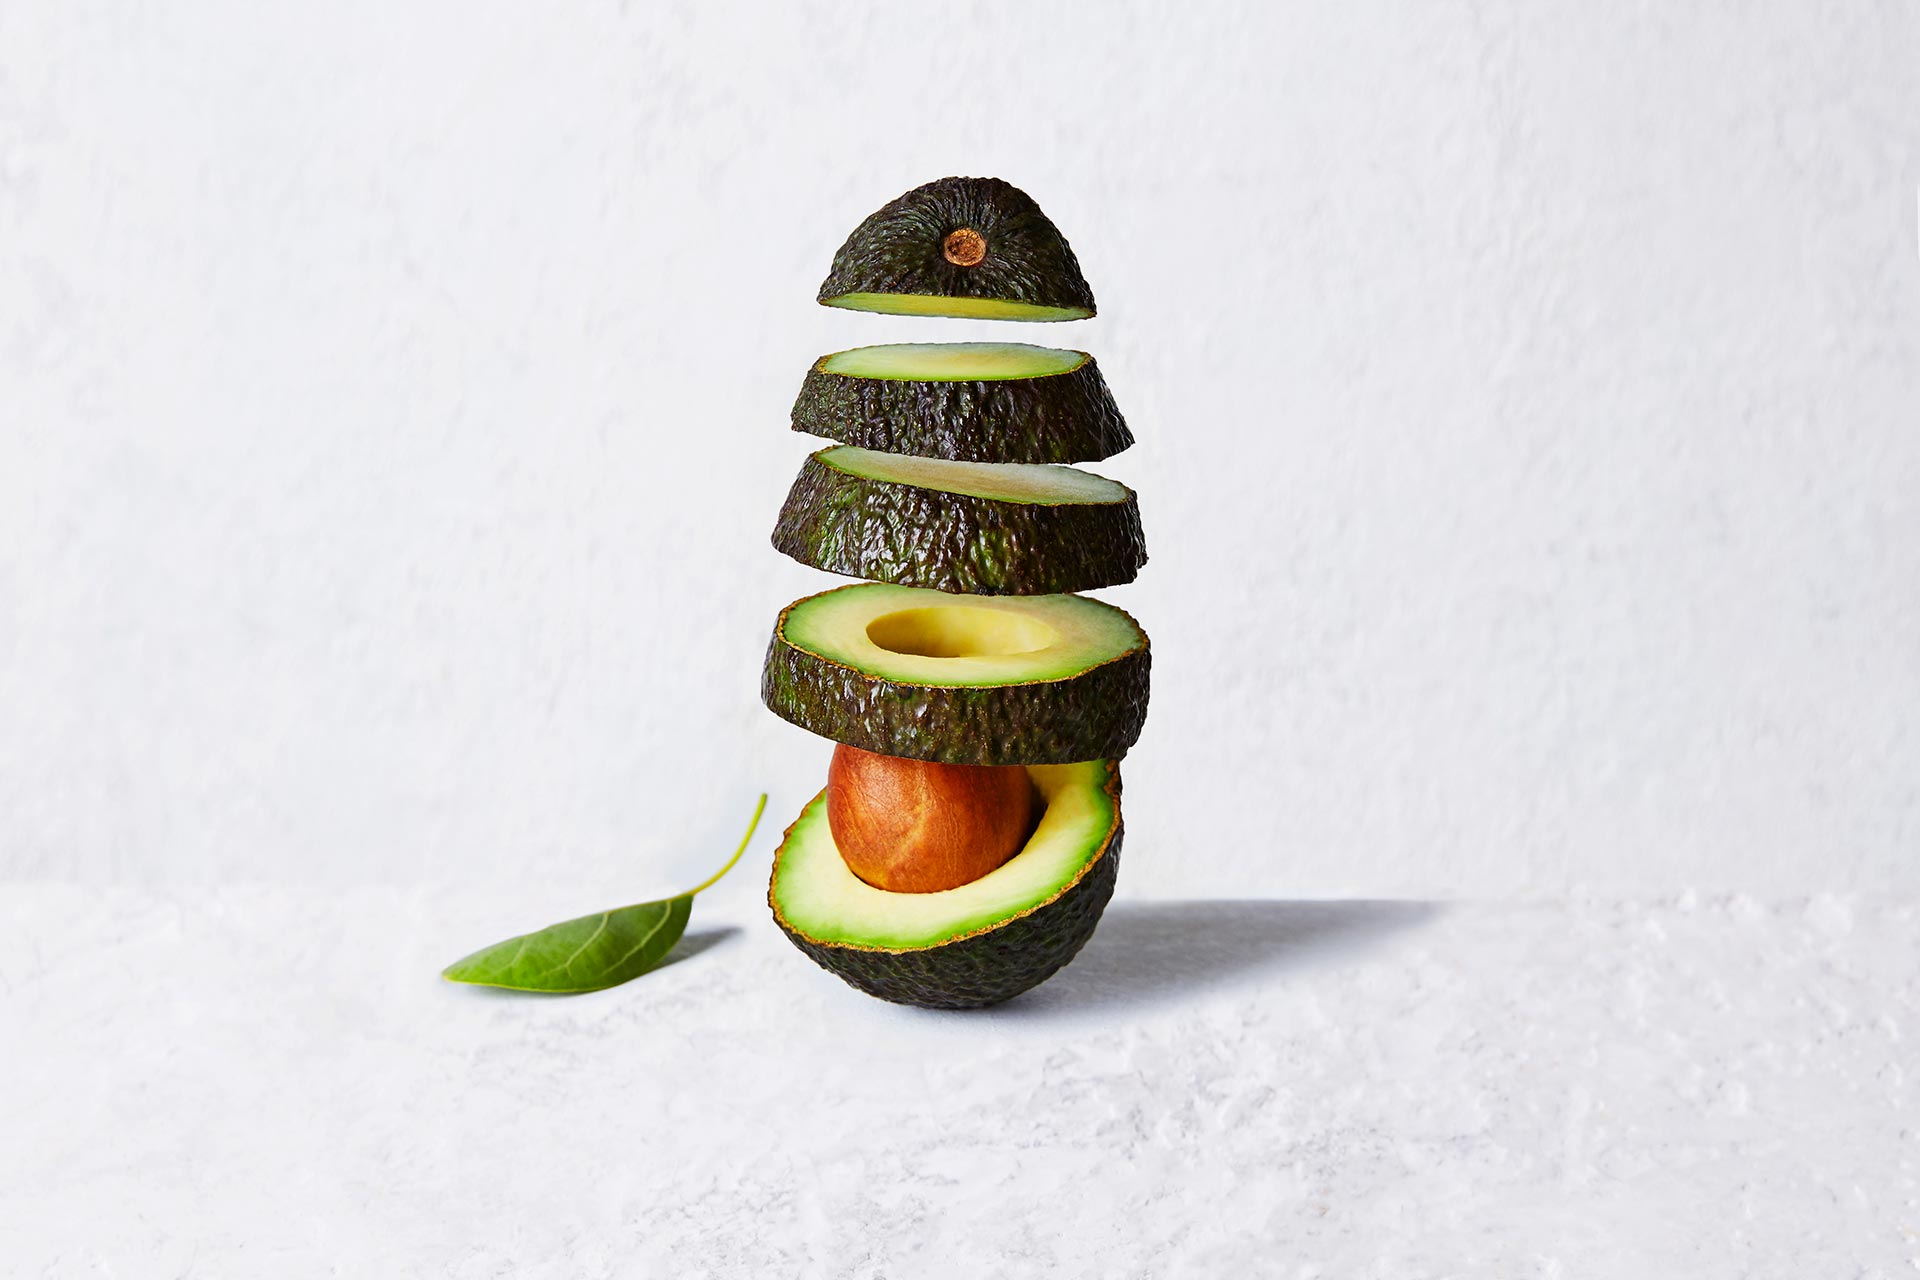 Vertical Artistic Sliced Avocado